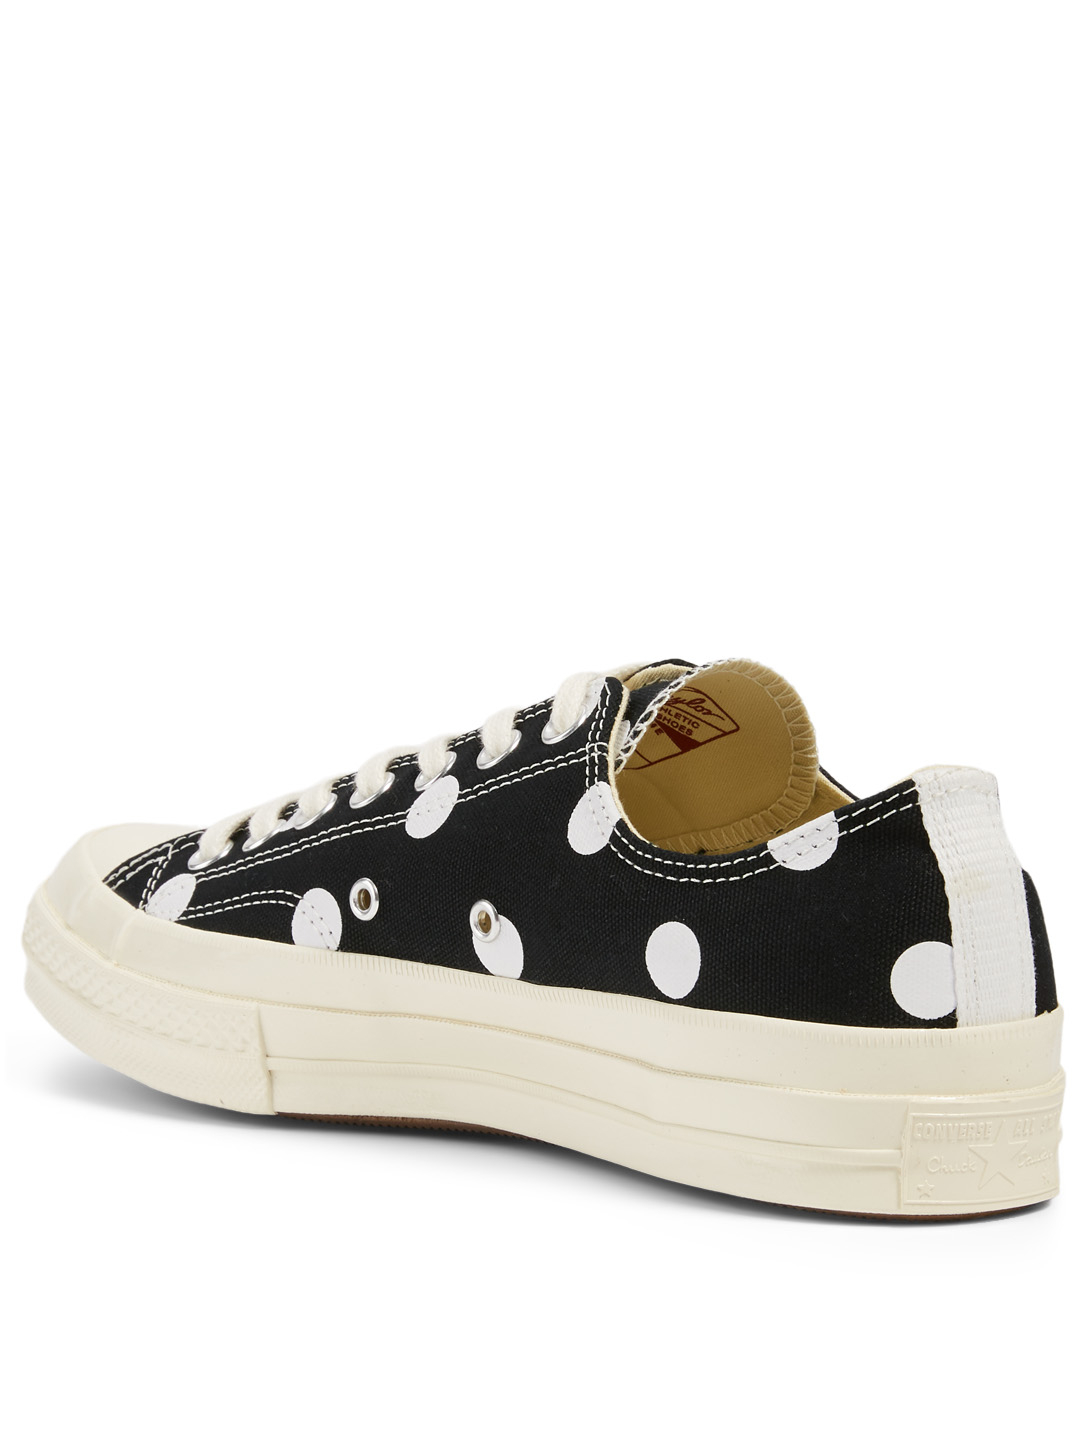 COMME DES GARÇONS PLAY Converse x CDG PLAY Chuck Taylor '70 Canvas Sneakers In Polka Dot Men's Black